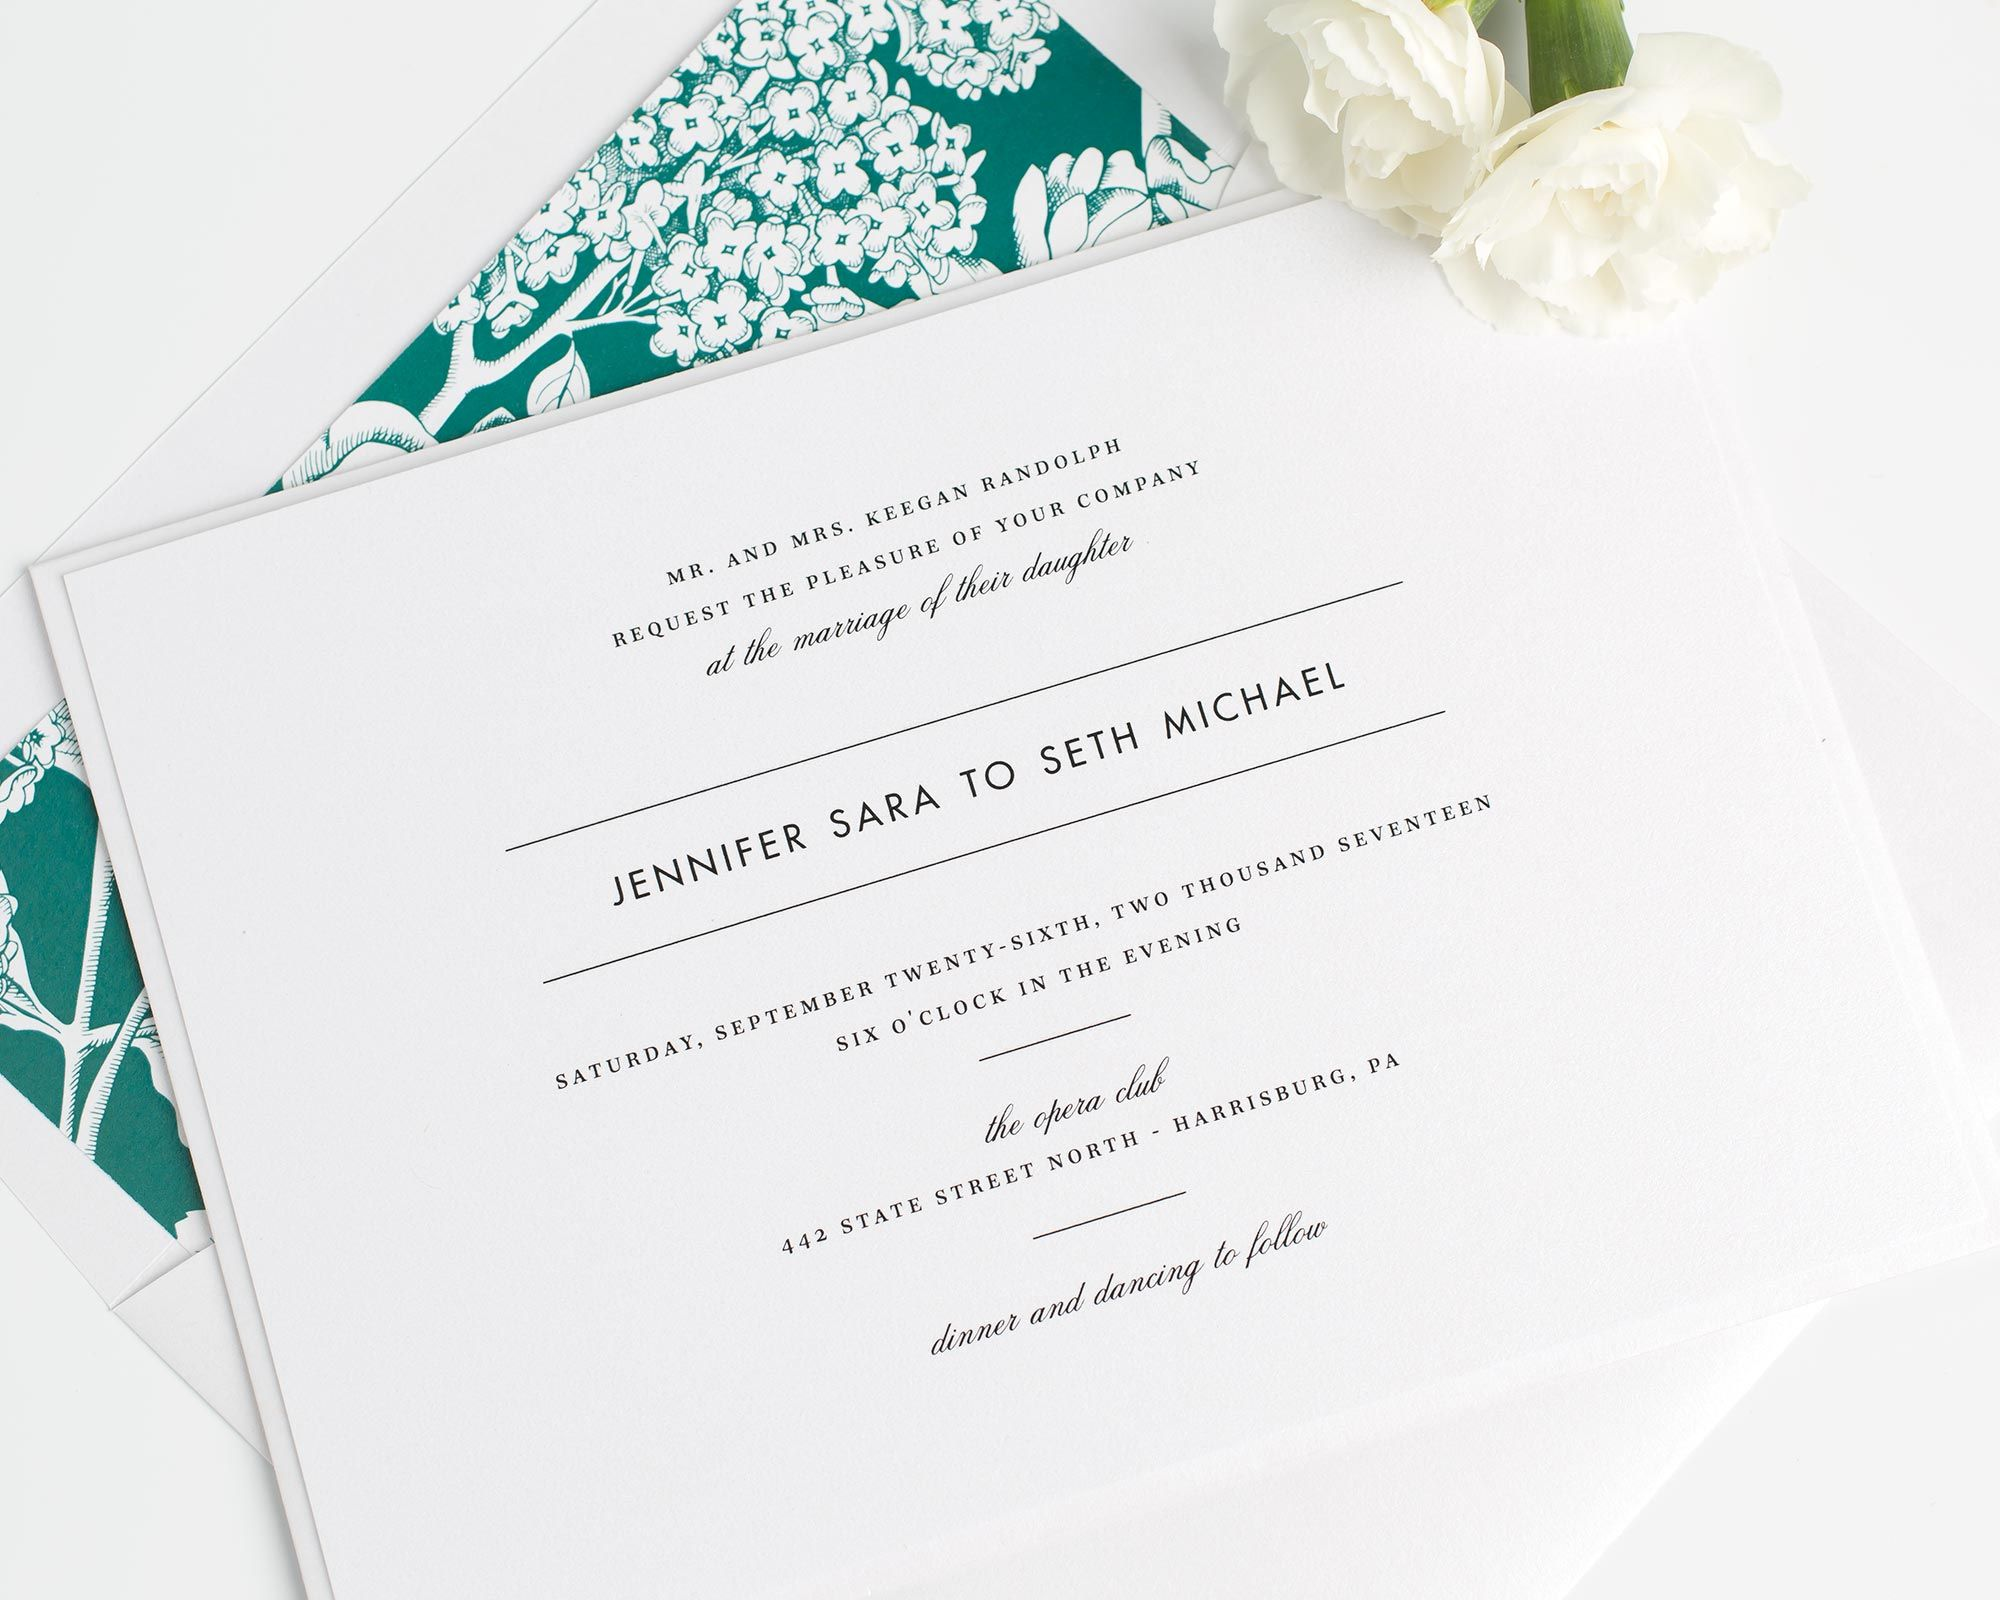 Modern Romance Wedding Invitations | Contemporary fonts, Belly bands ...